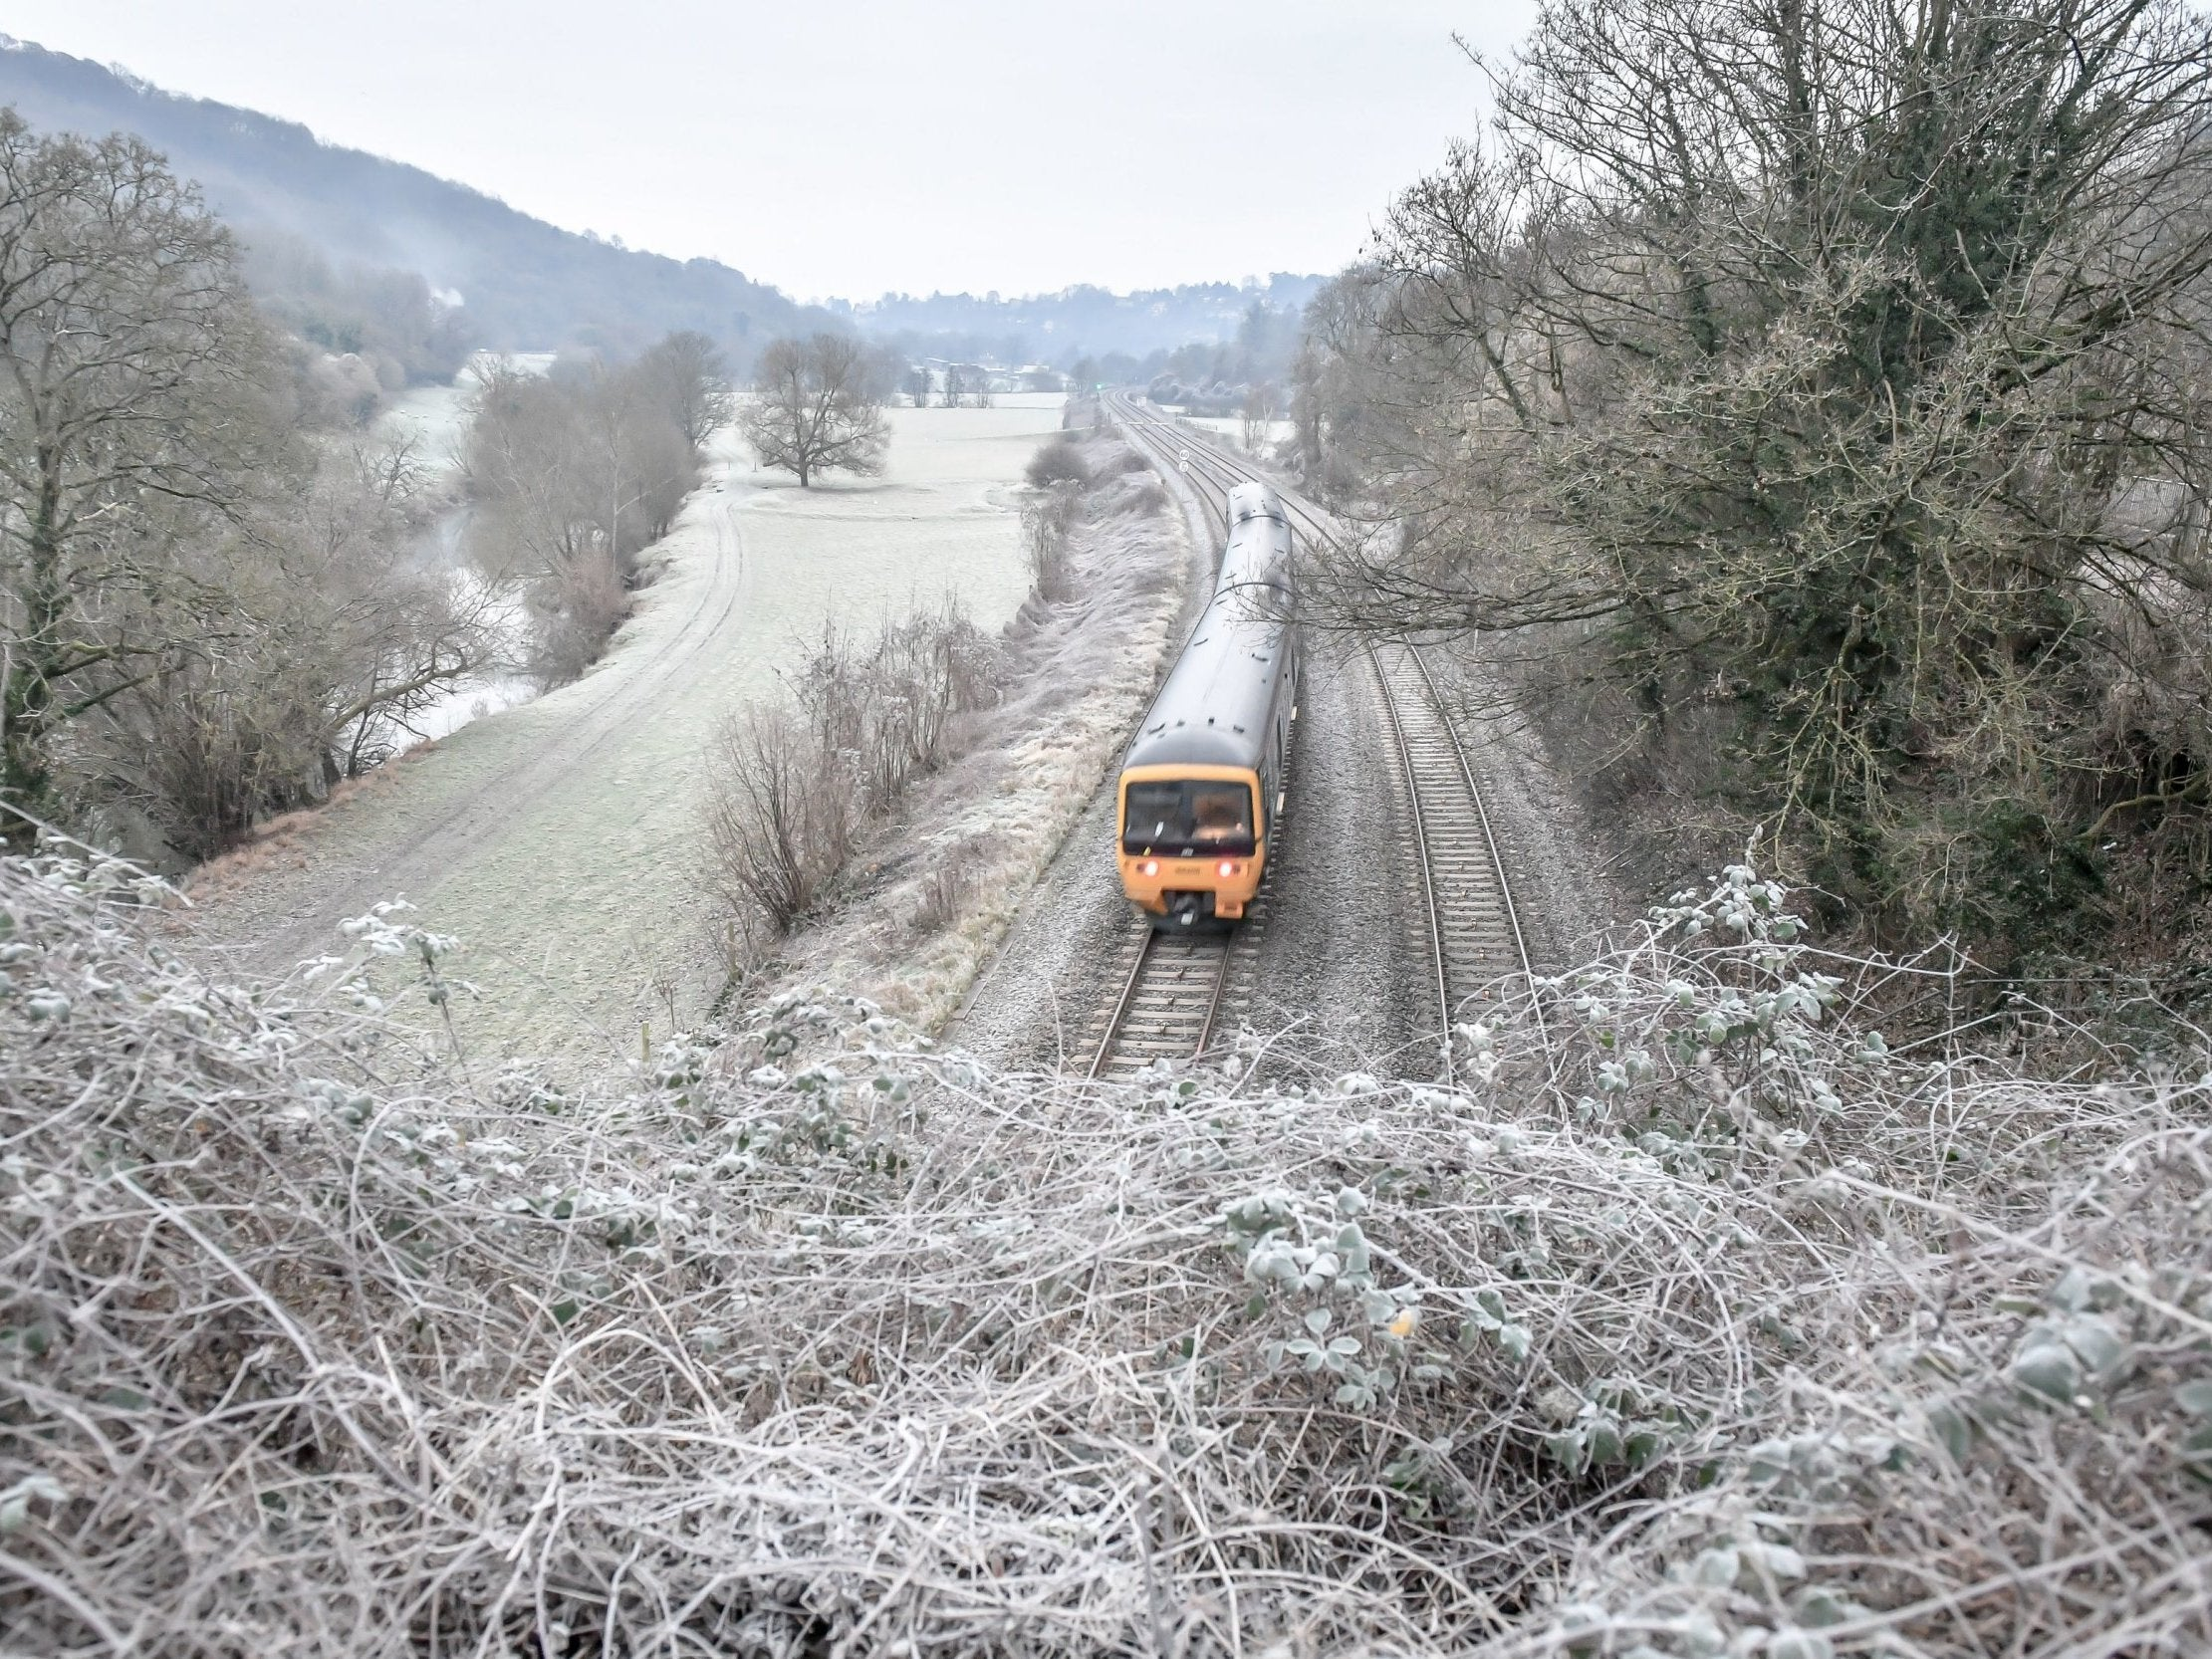 UK weather forecast: Deep freeze continues as warnings issued over snow and ice